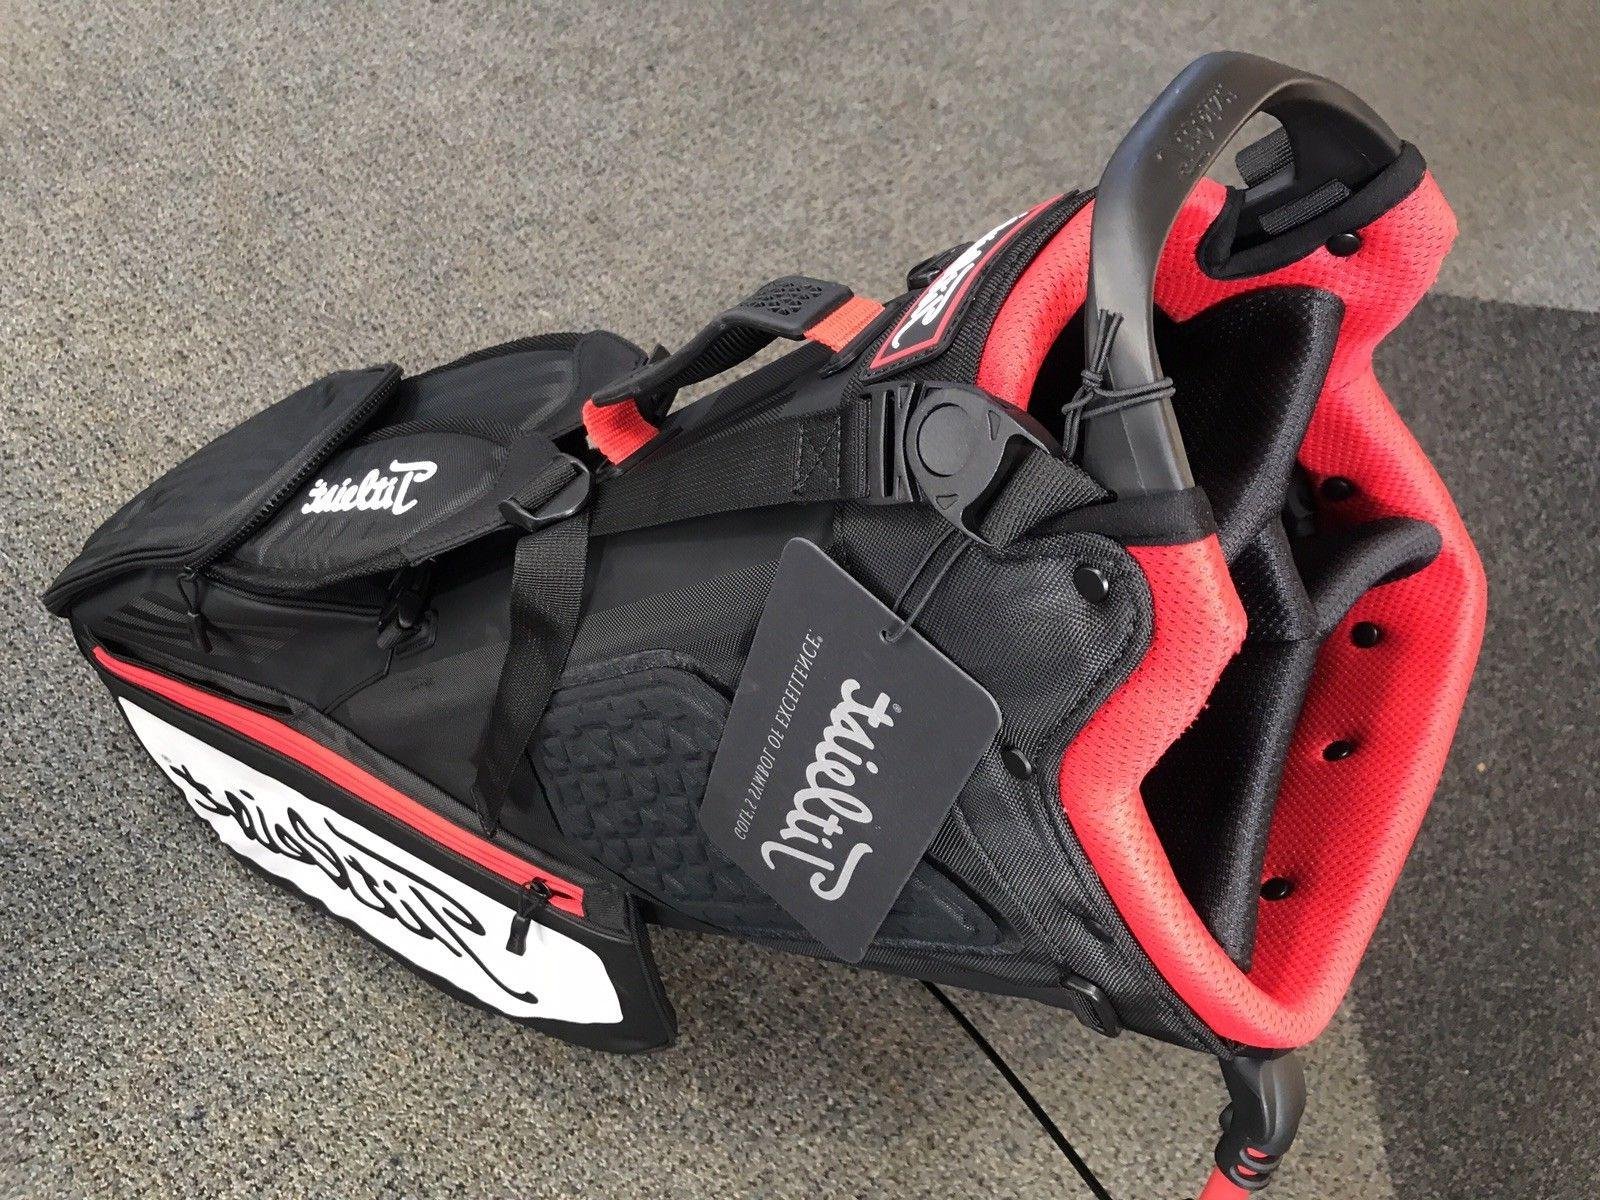 ***BRAND NEW*** Players 4 Stand Bag -